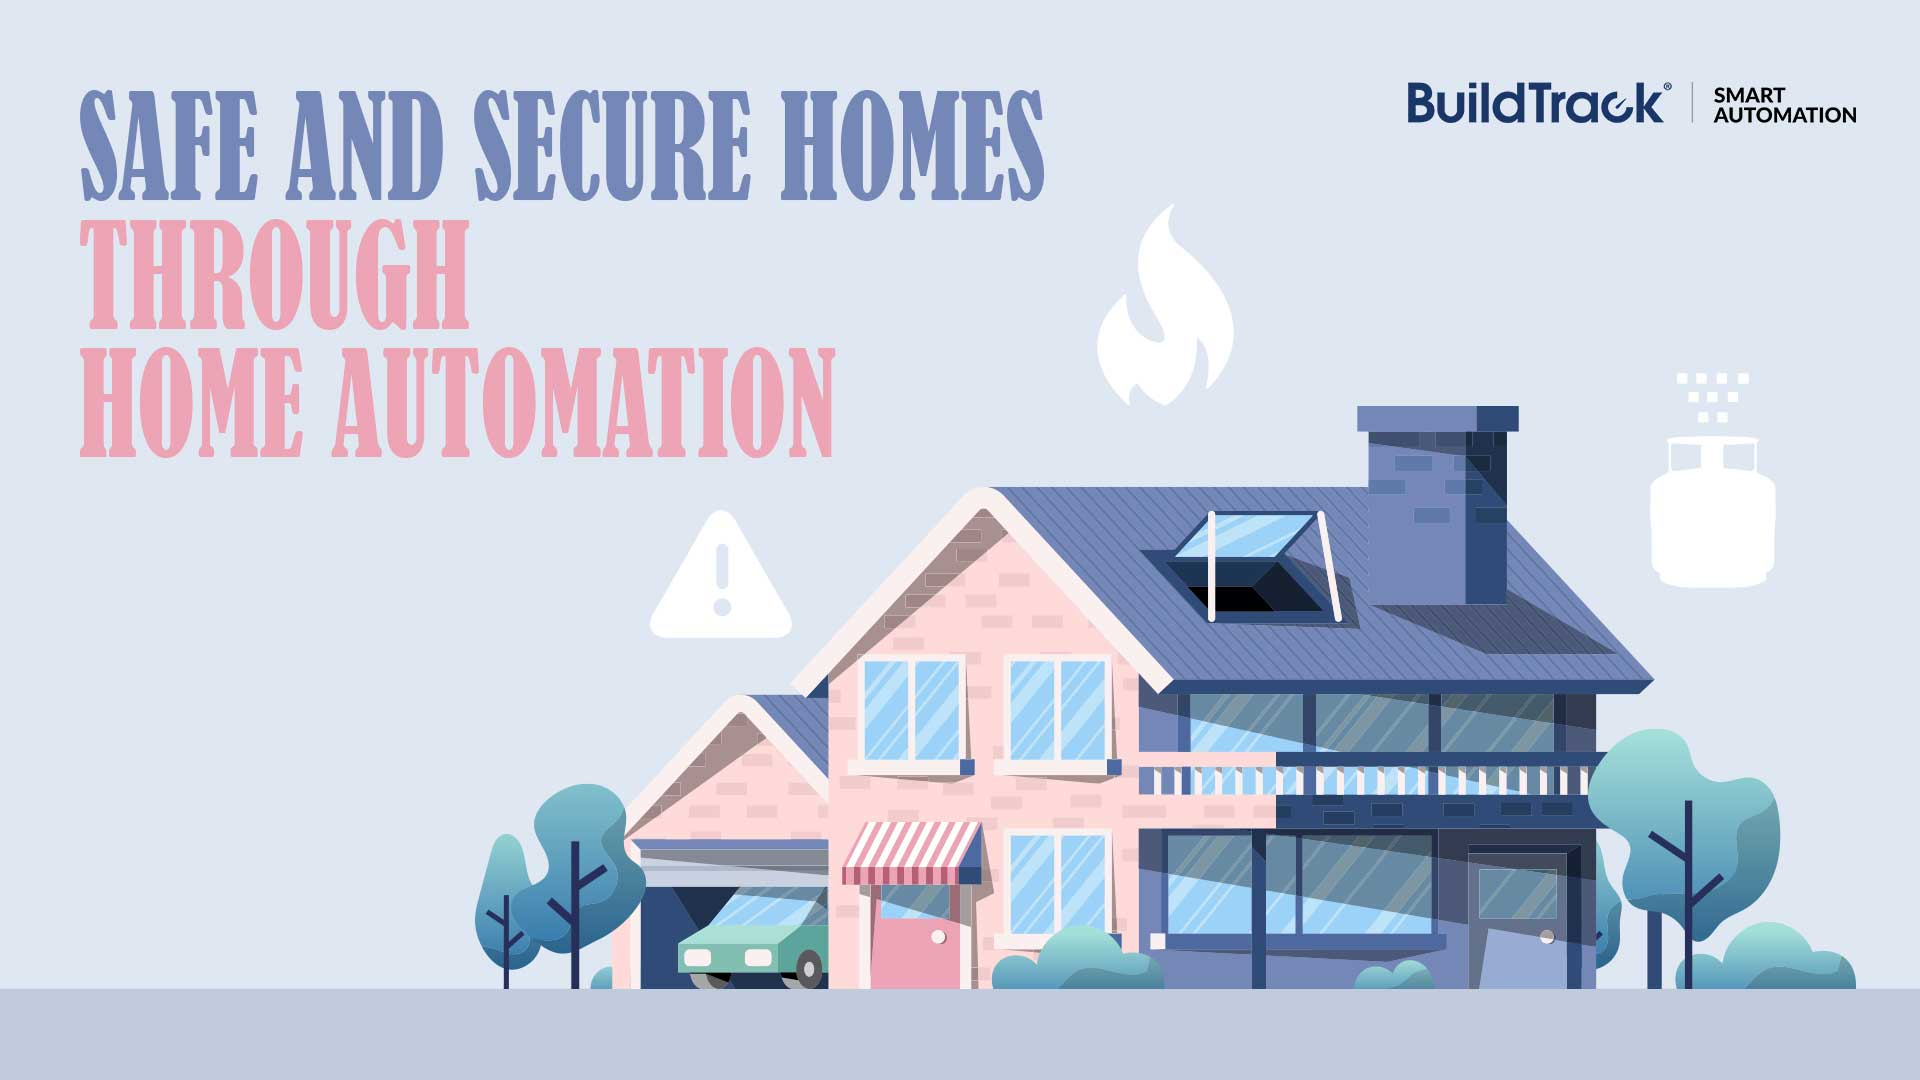 Home automation is on the rise